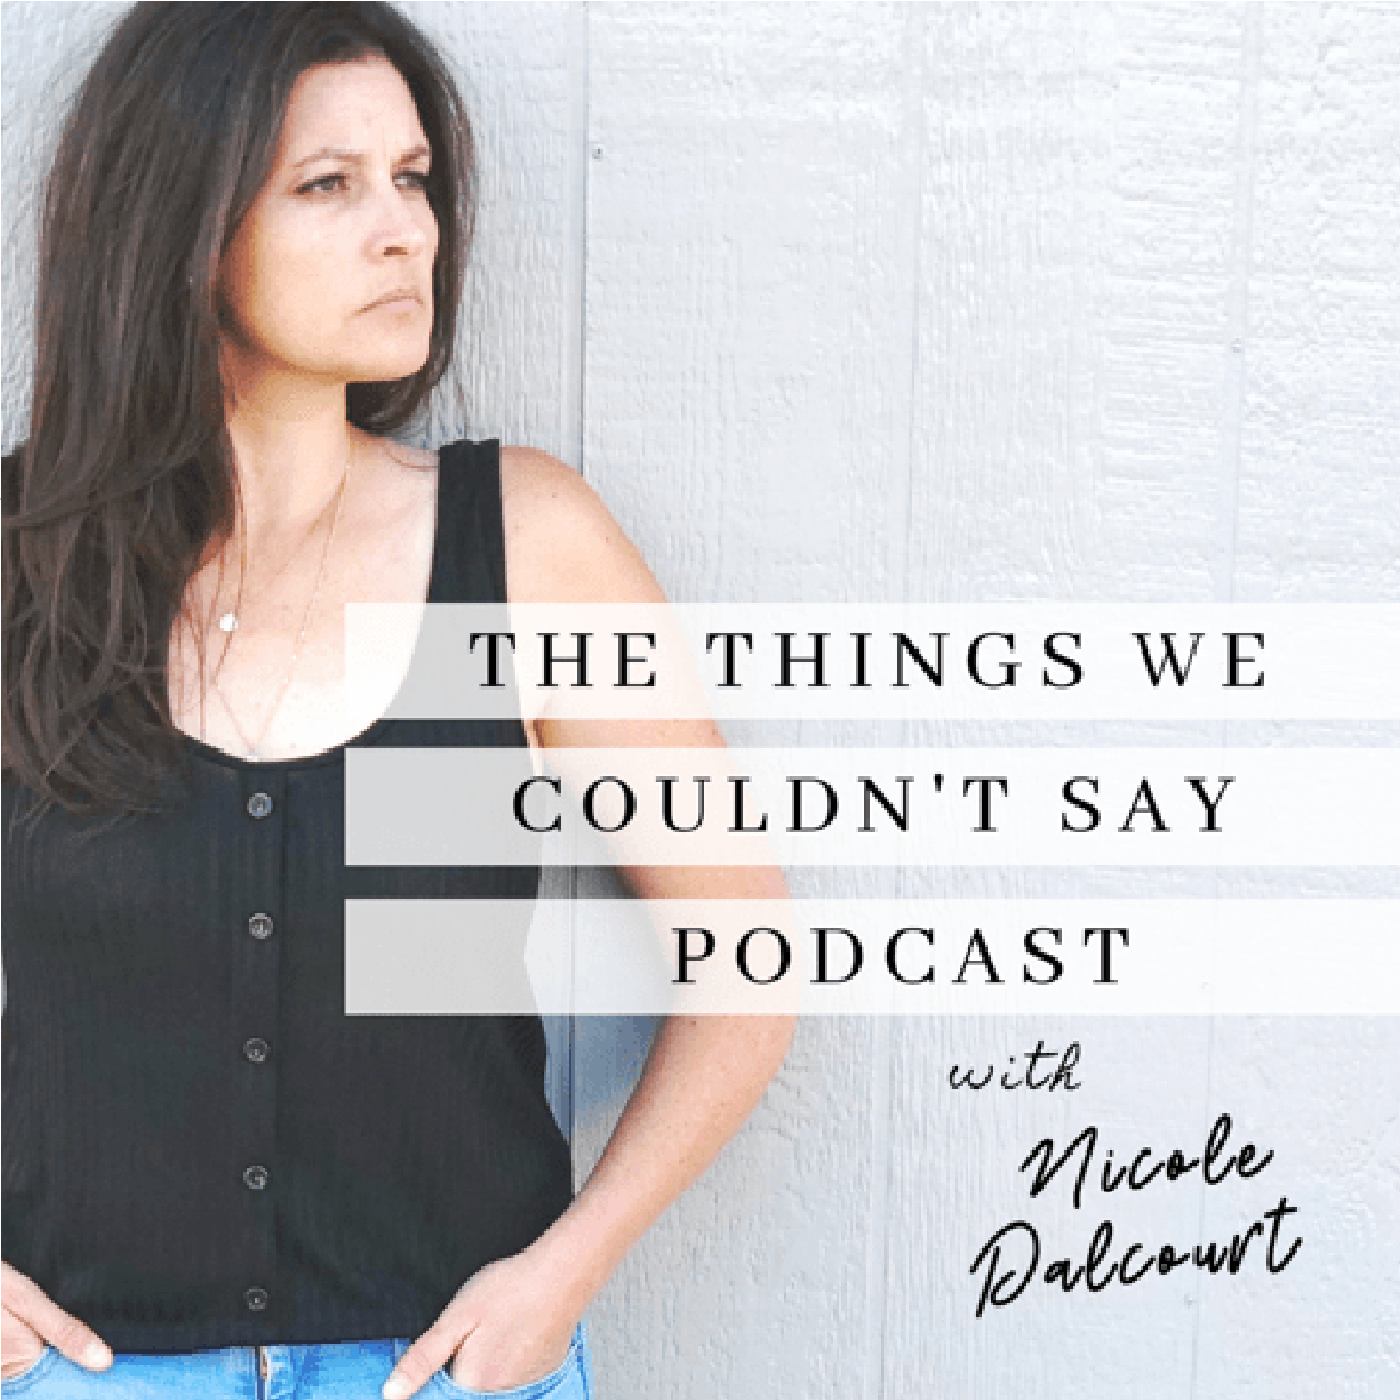 The Things We Couldn't Say Podcast show art